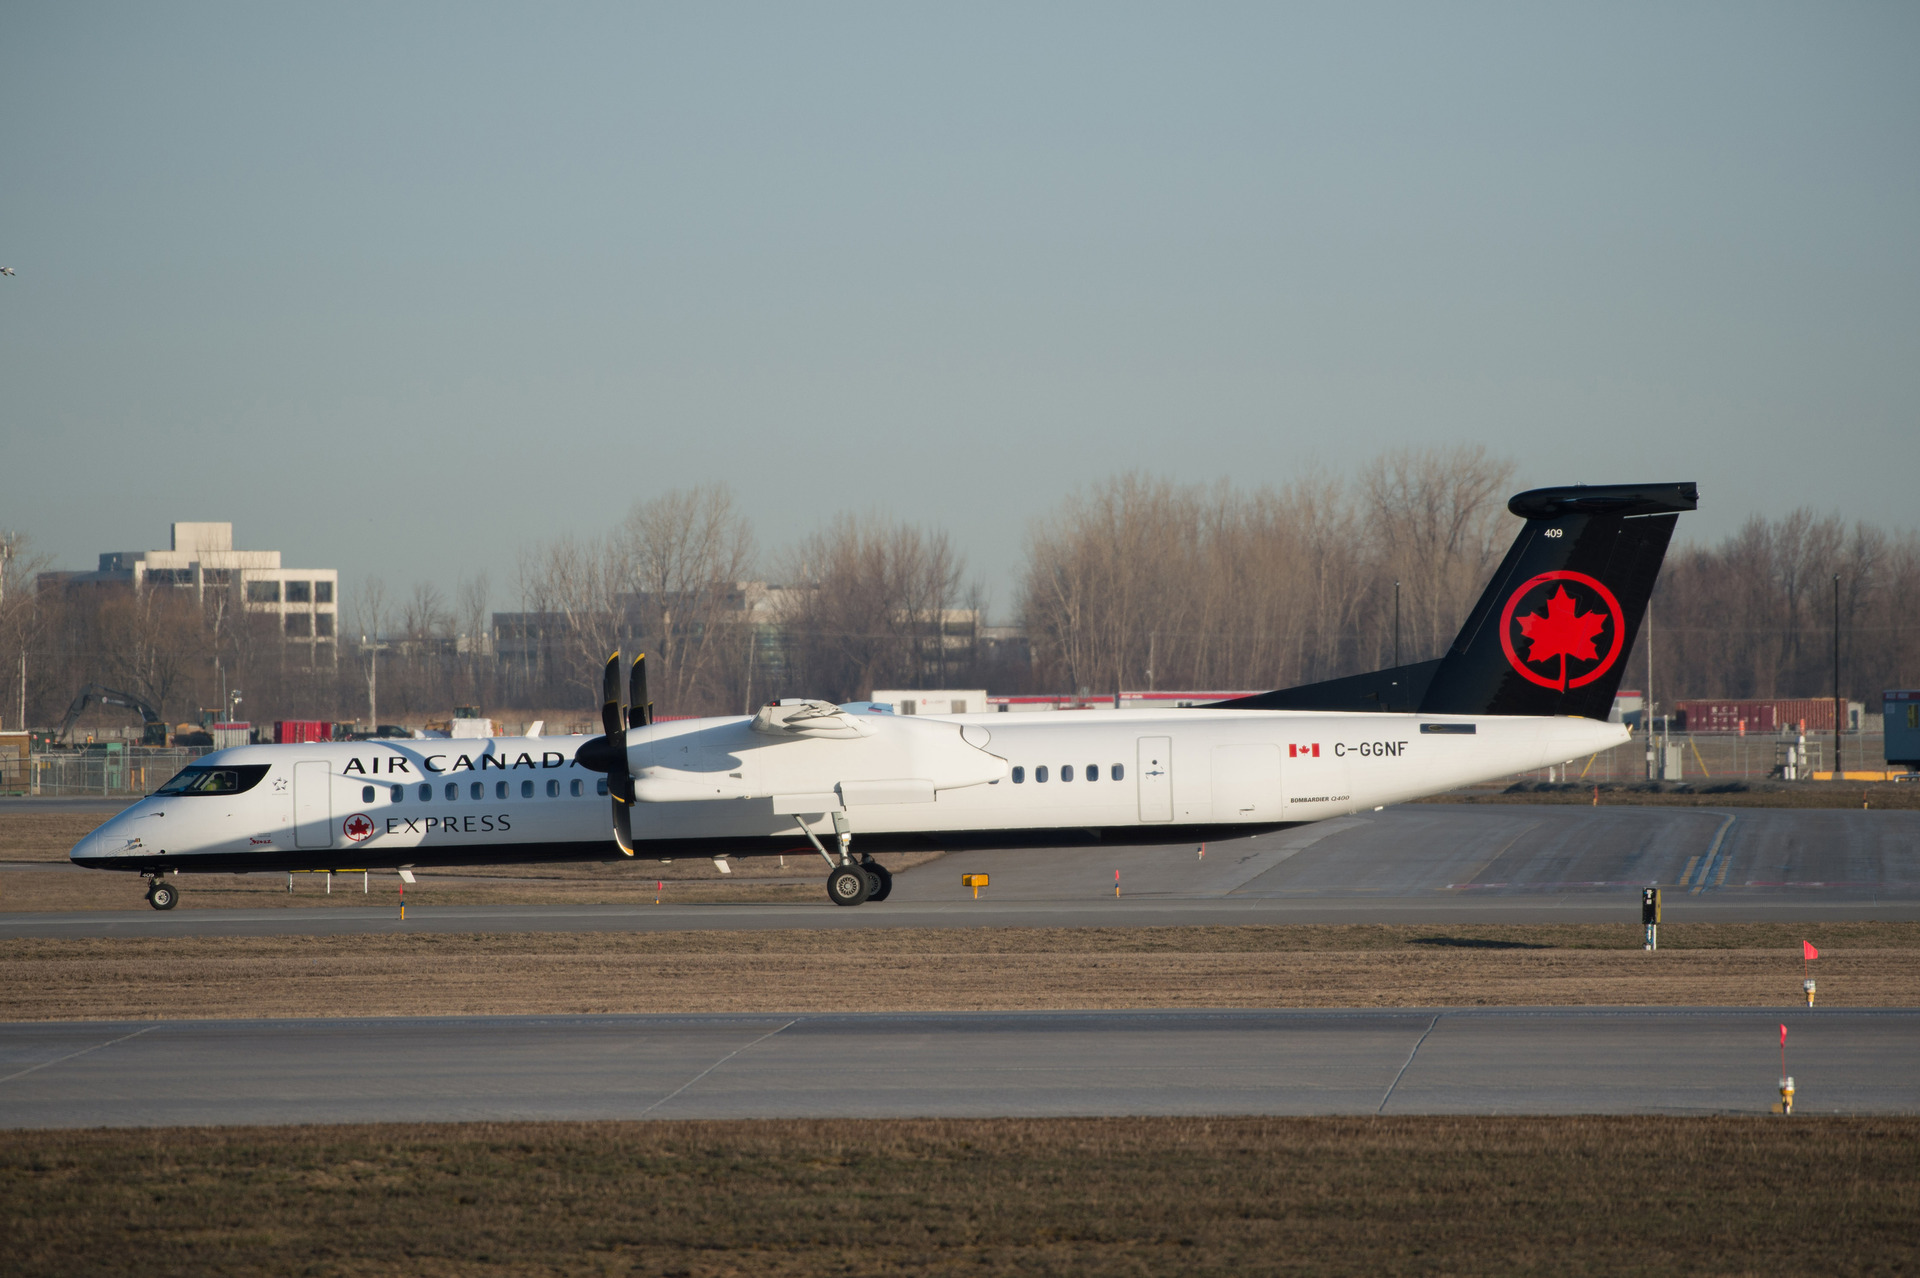 What to expect from an Air Canada flight